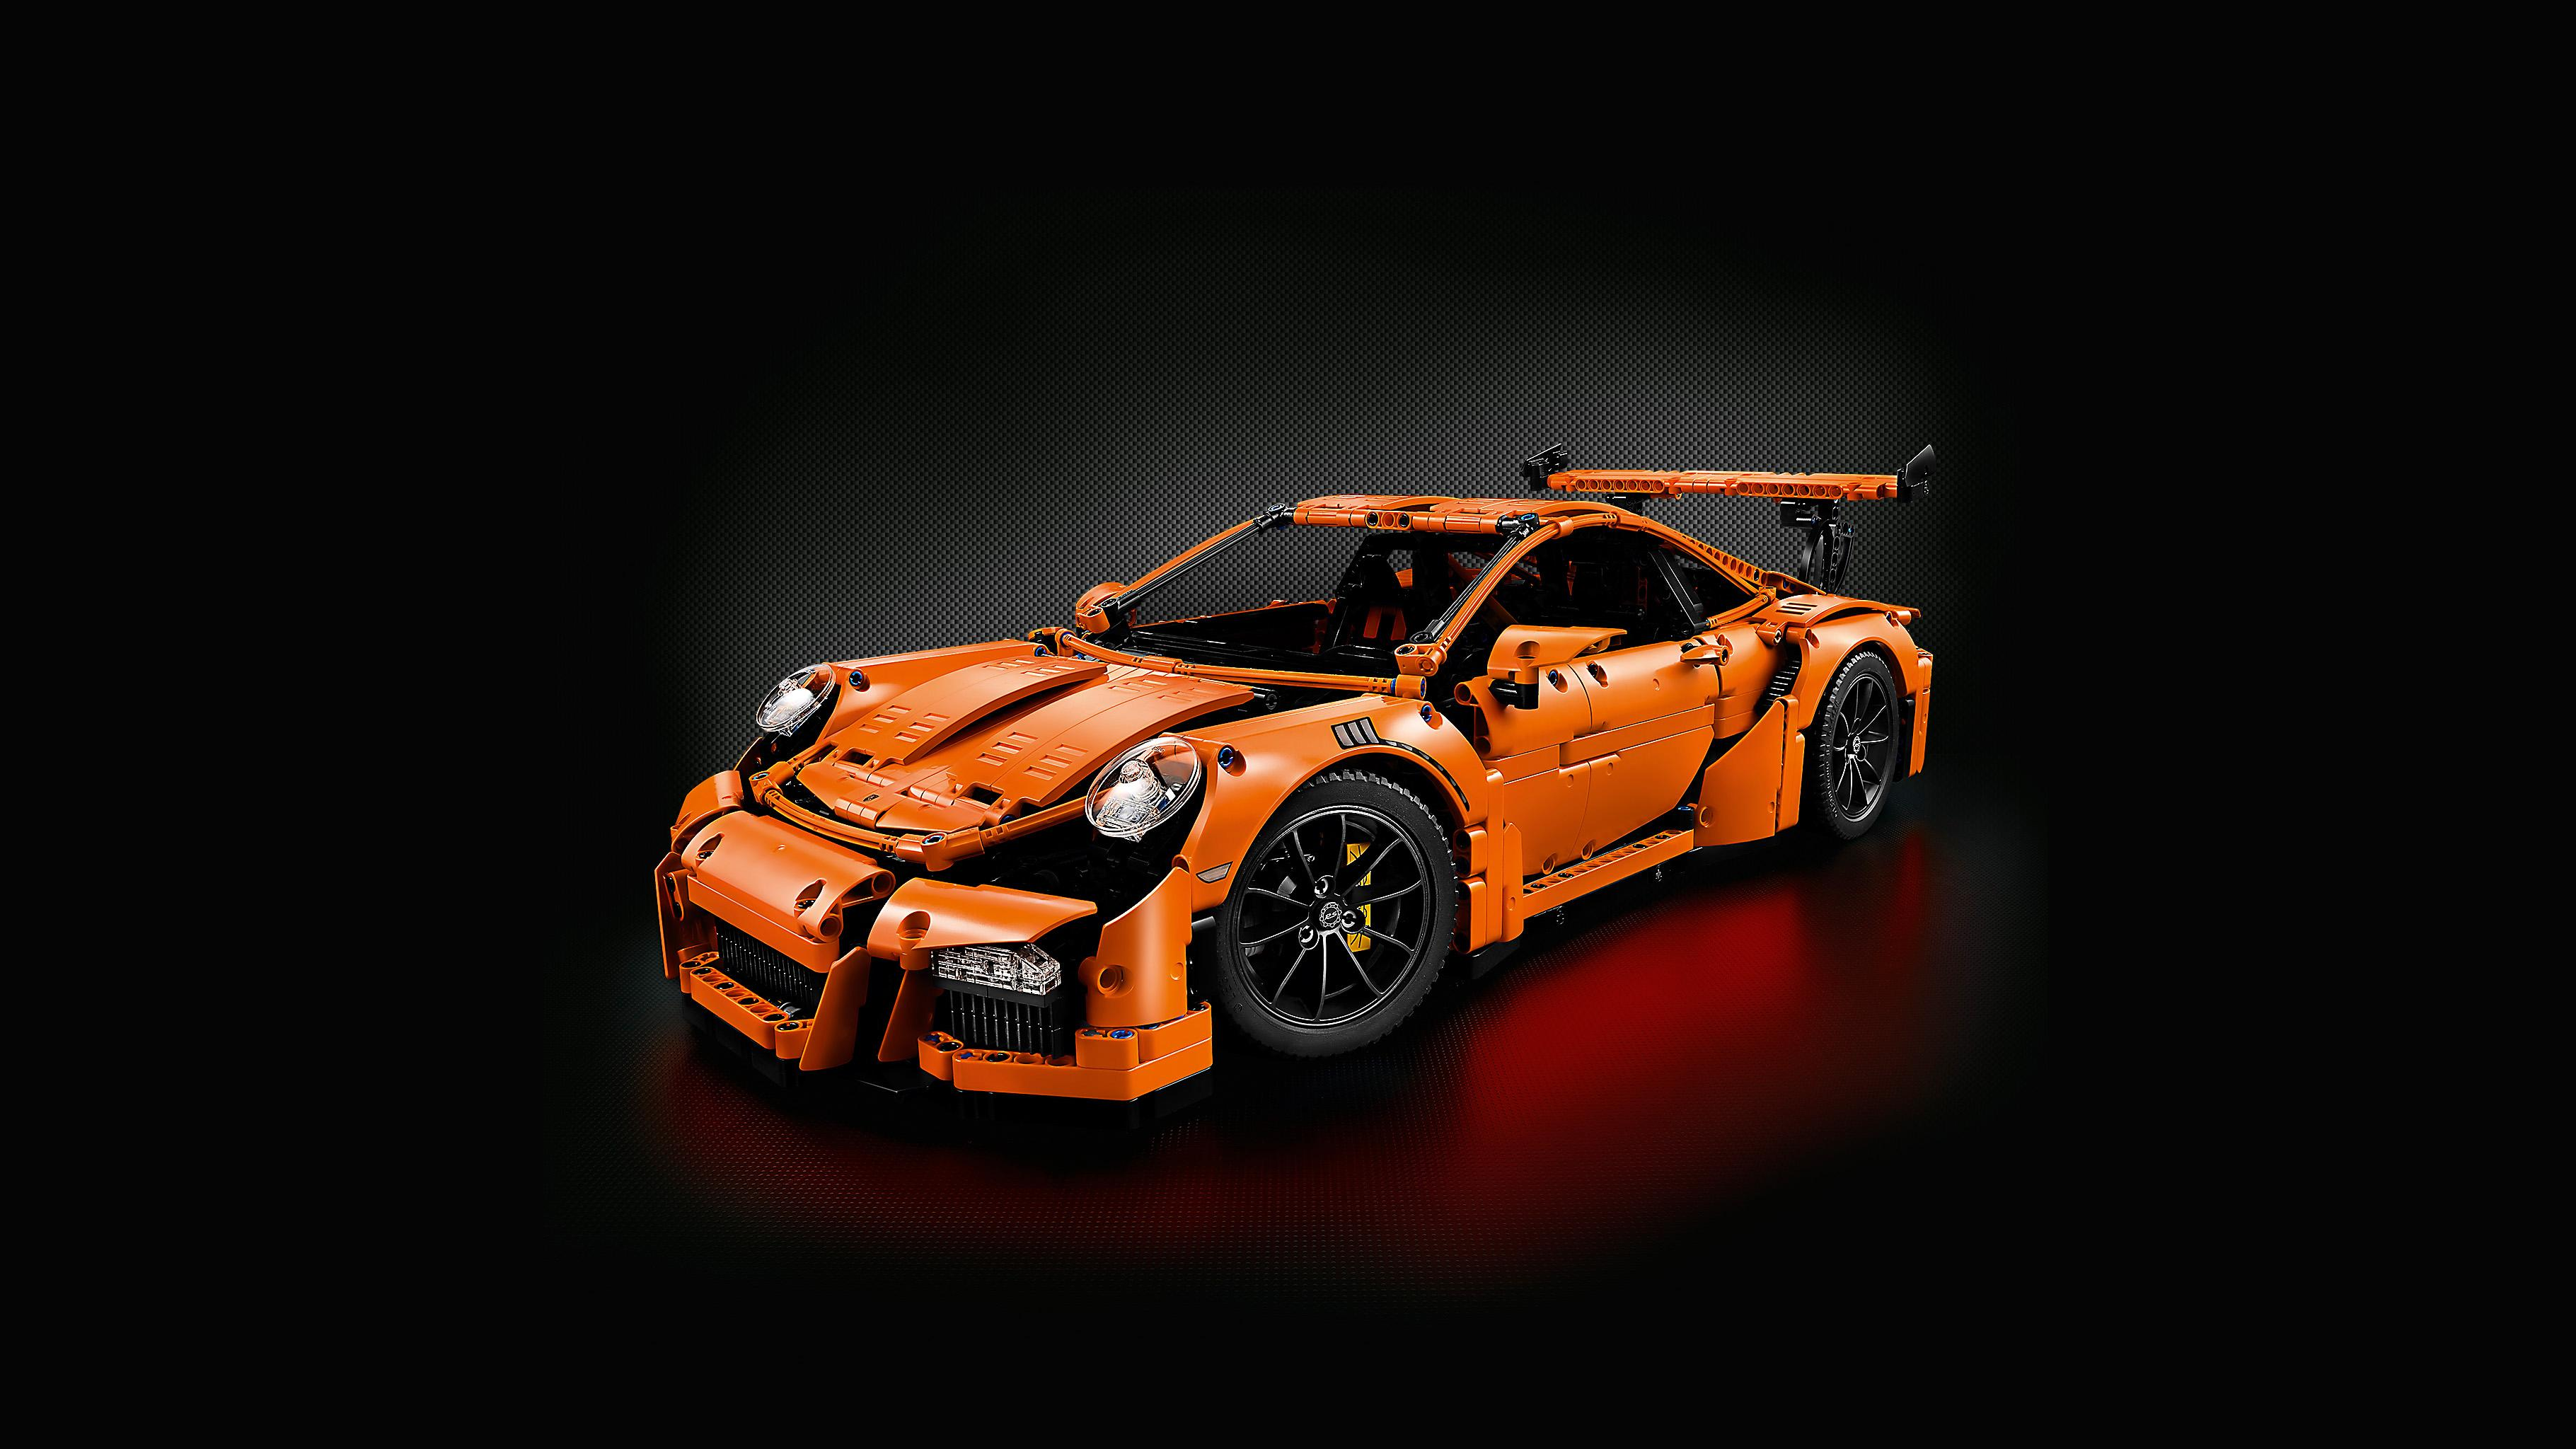 lego technic porsche 911 gt3 rs toys games. Black Bedroom Furniture Sets. Home Design Ideas